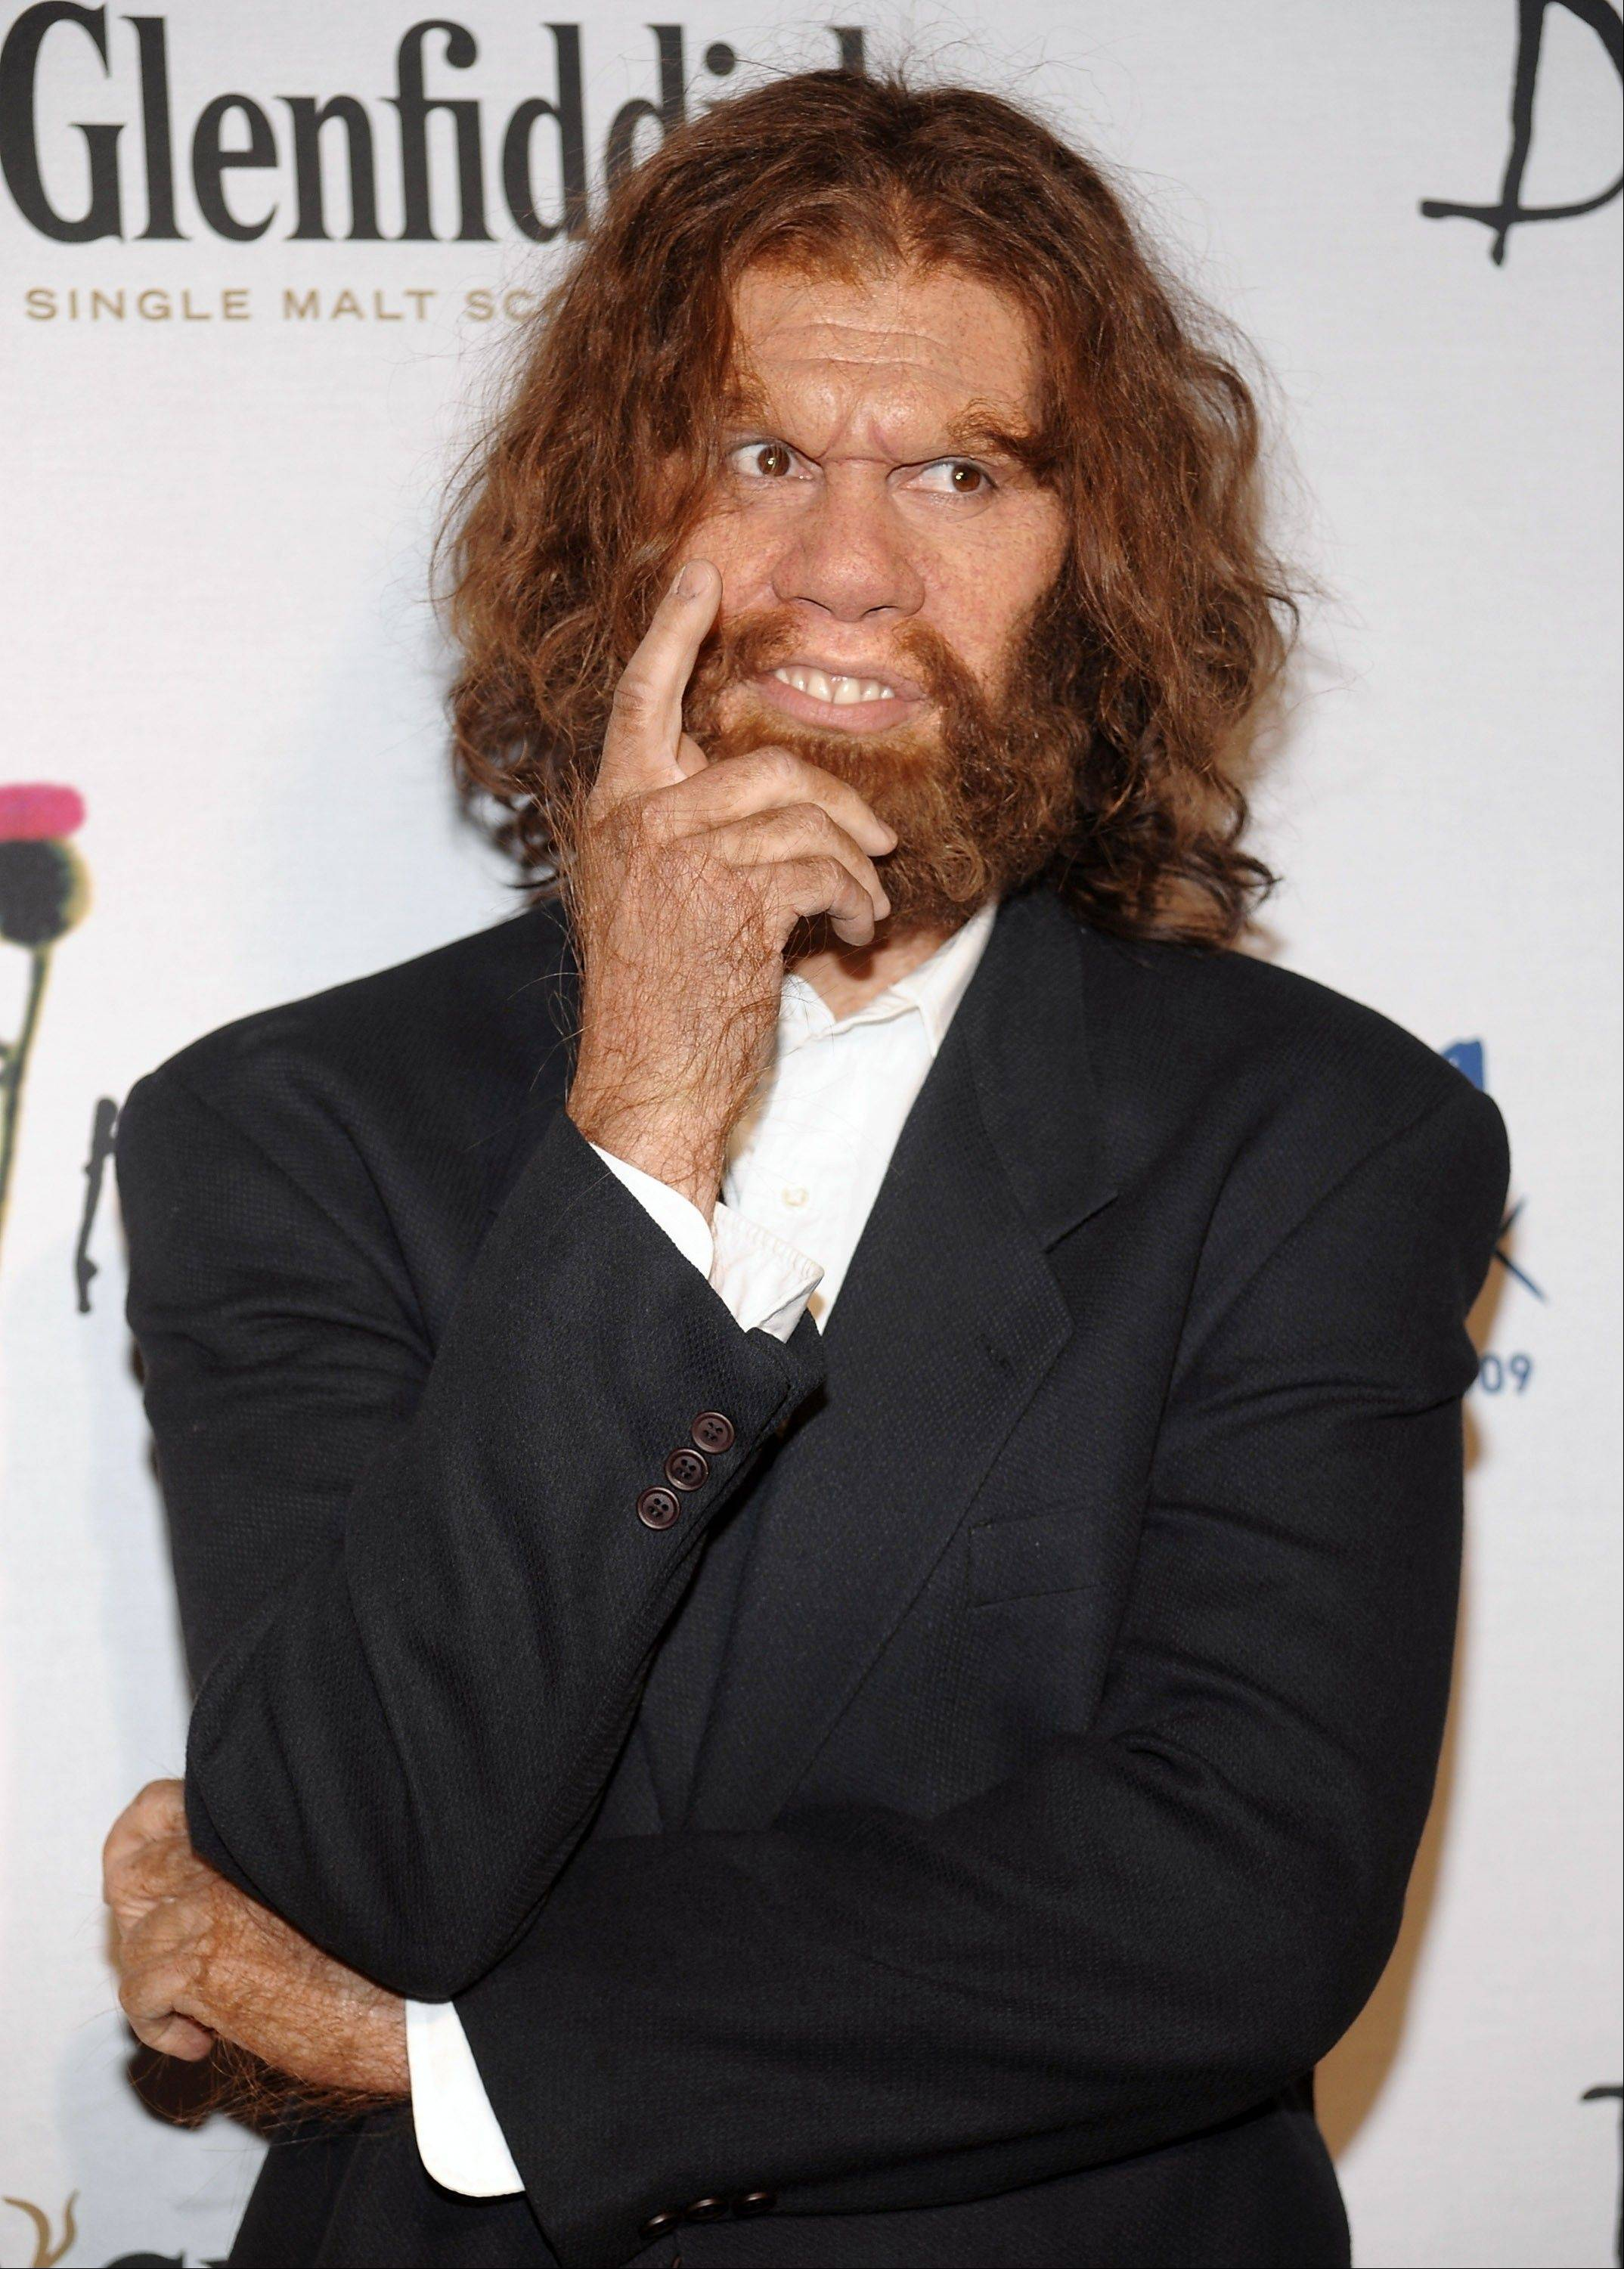 Jeff Daniel Phillips makes an appearance as the Caveman we know and love from the Geico Insurance commercials.